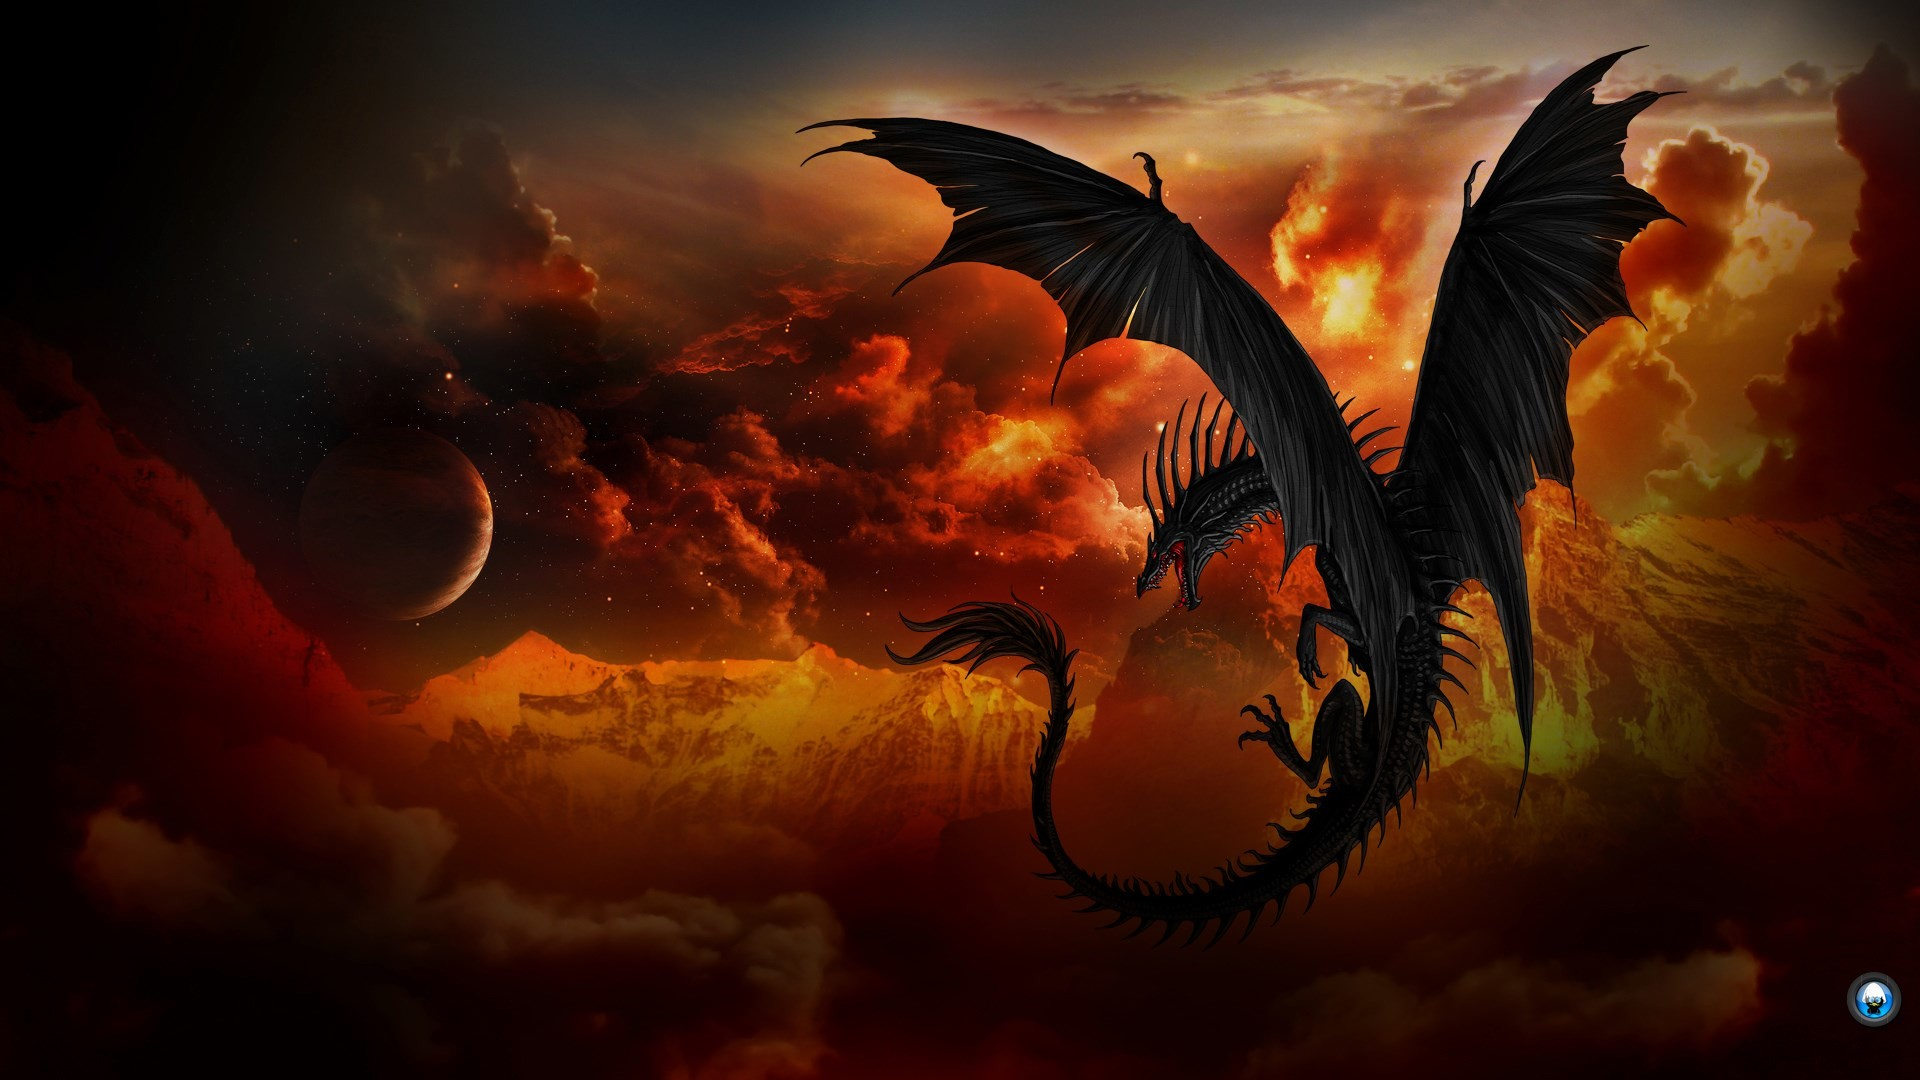 1920x1080 dragon widescreen backgrounds